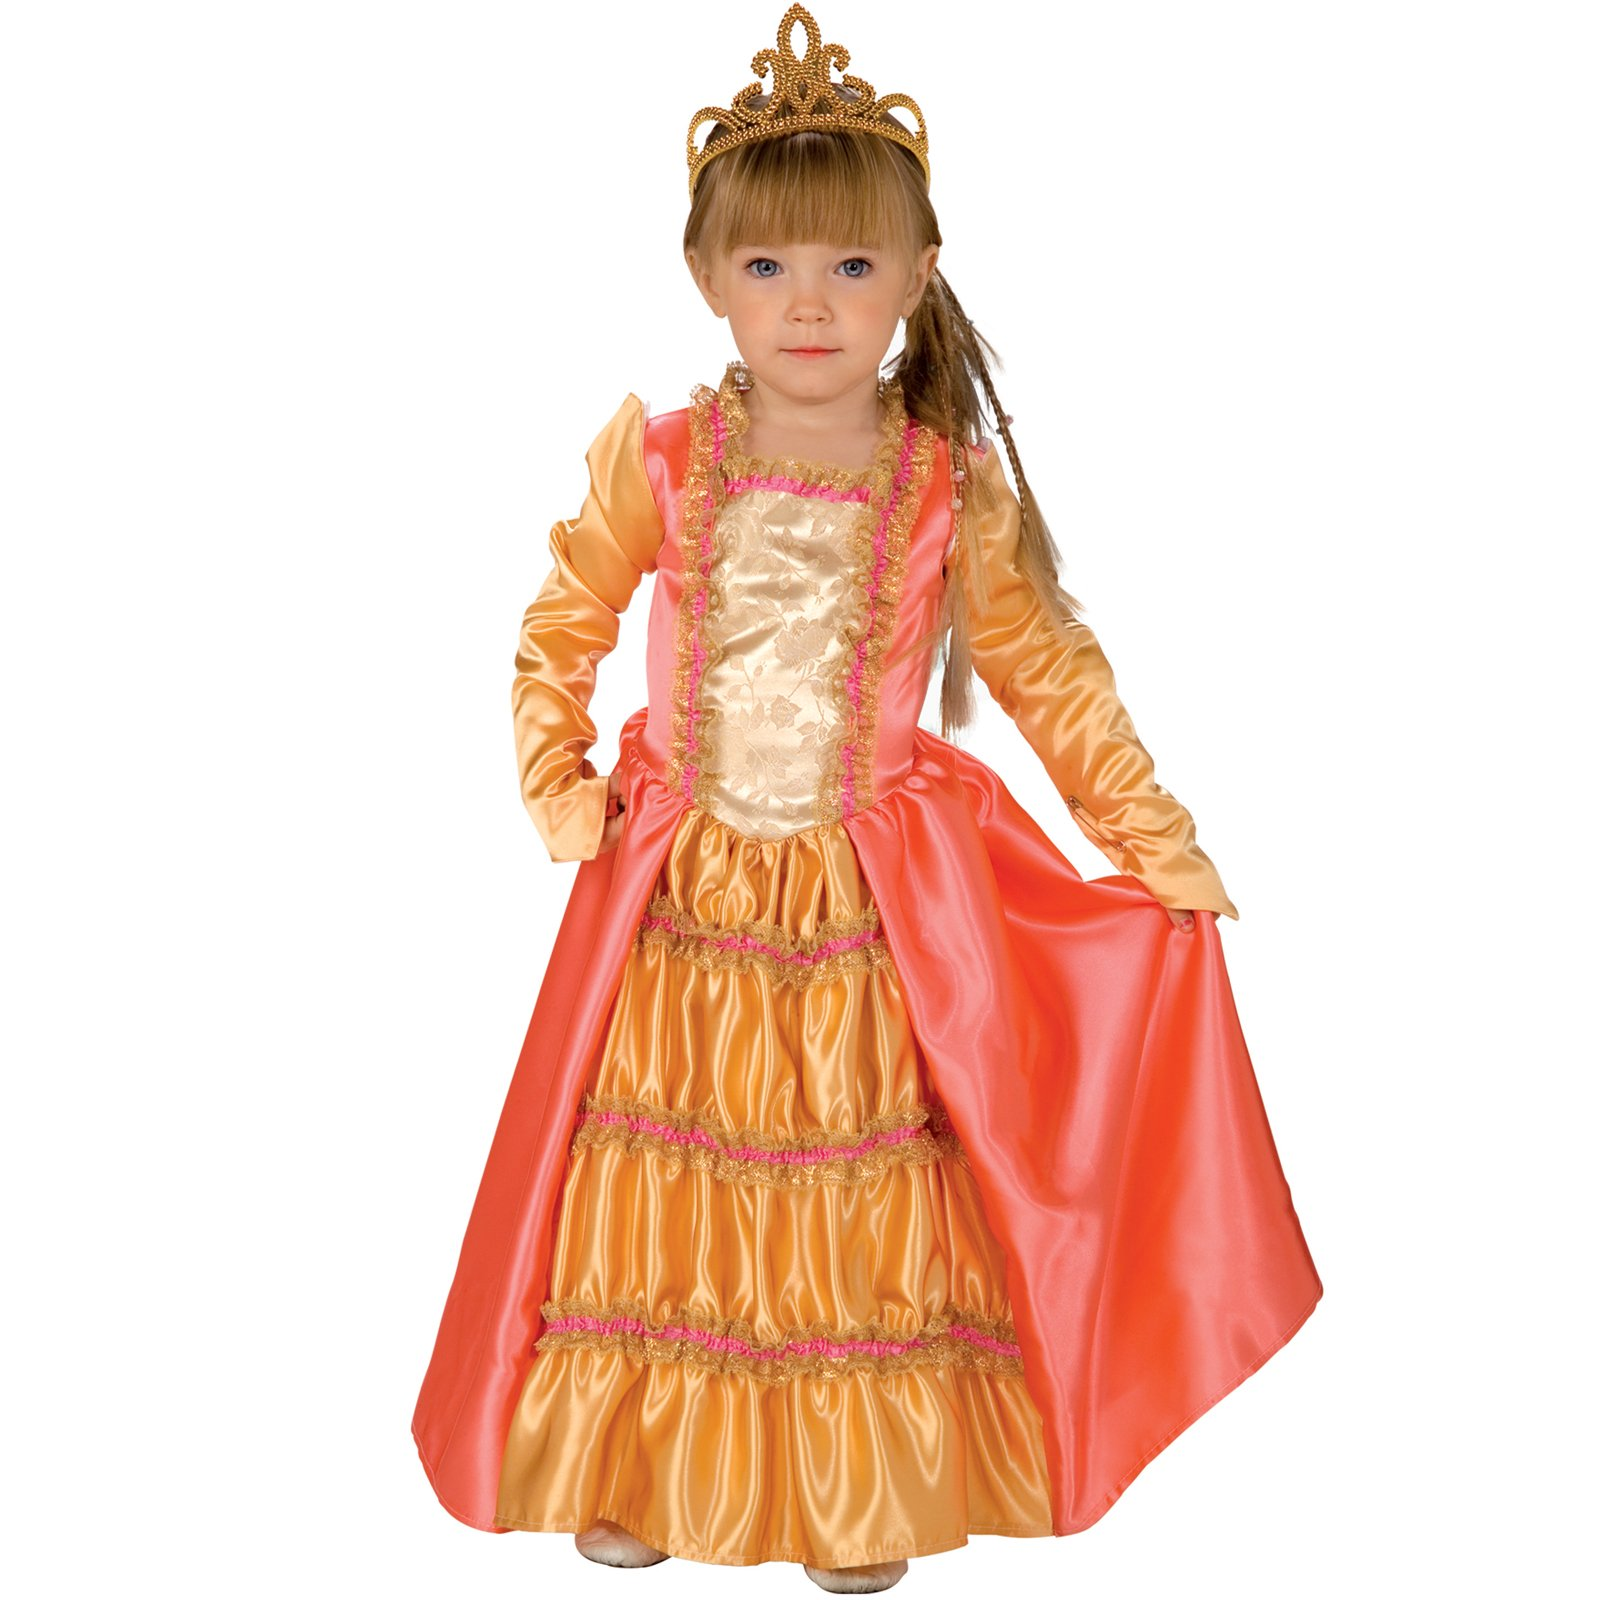 Shrek the Third - Karate Rapunzel Toddler/Child Costume